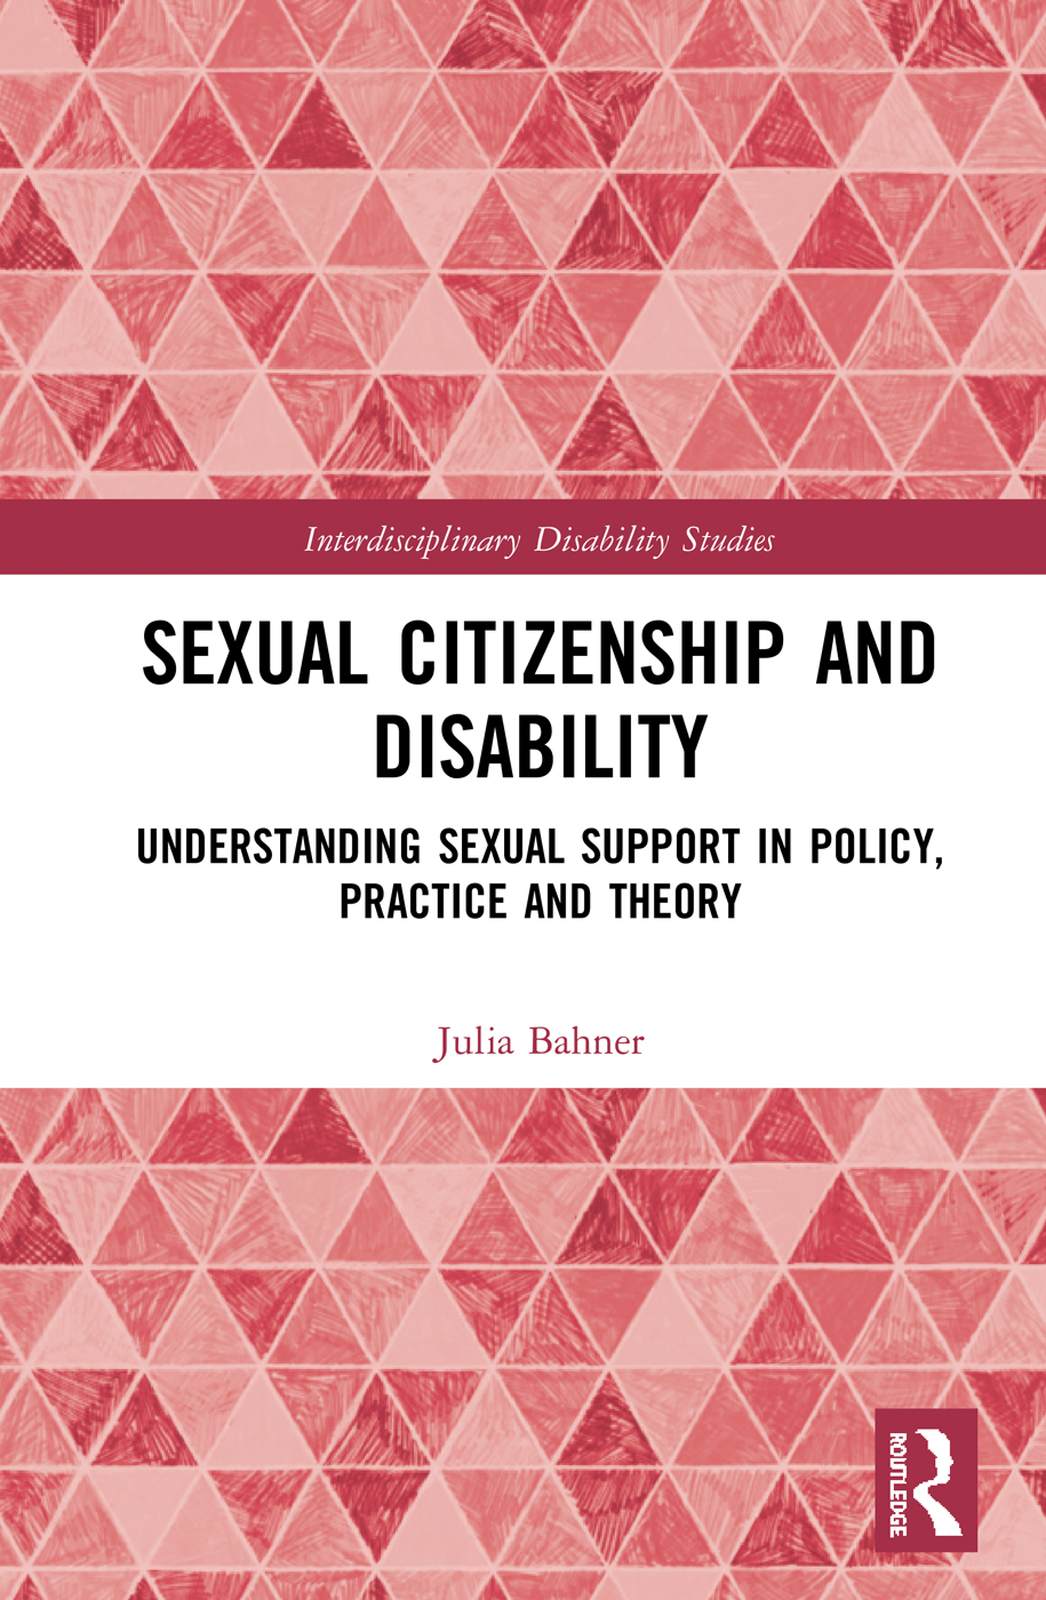 Sexual Citizenship and Disability: Understanding Sexual Support in Policy, Practice and Theory book cover